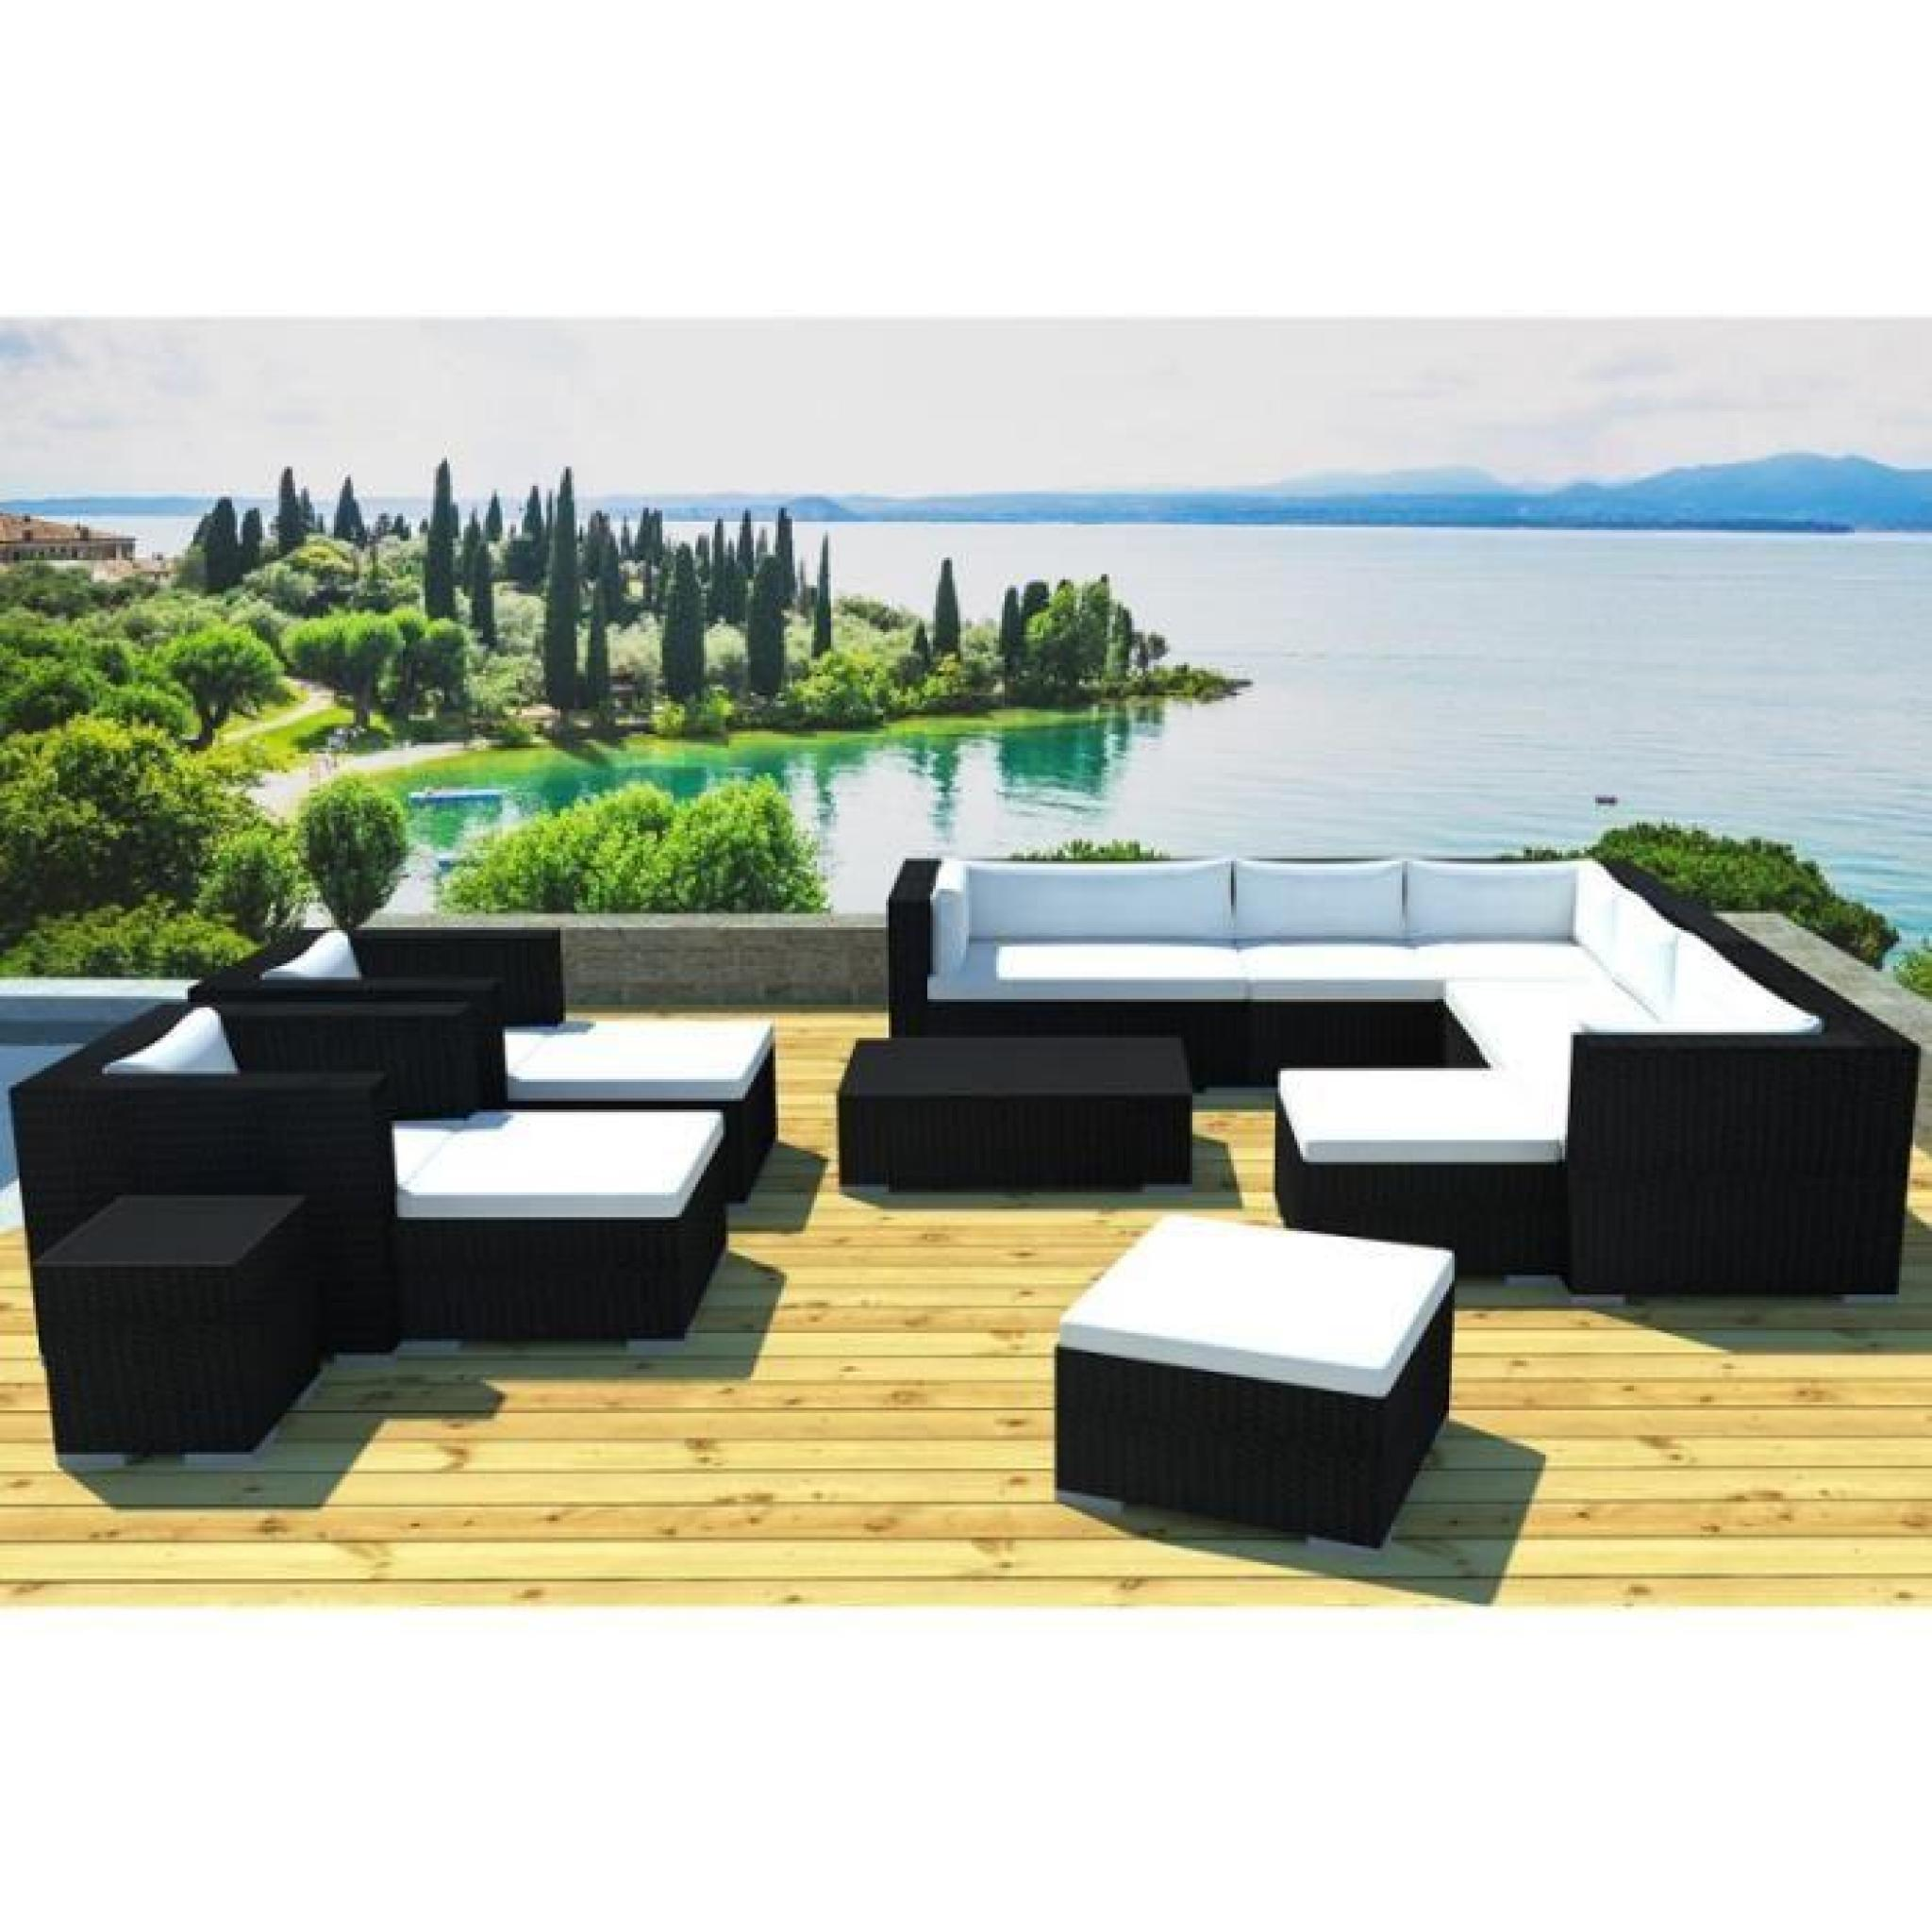 paris prix salon de jardin en r sine lisbonne 12 places noir gris achat vente salon de. Black Bedroom Furniture Sets. Home Design Ideas